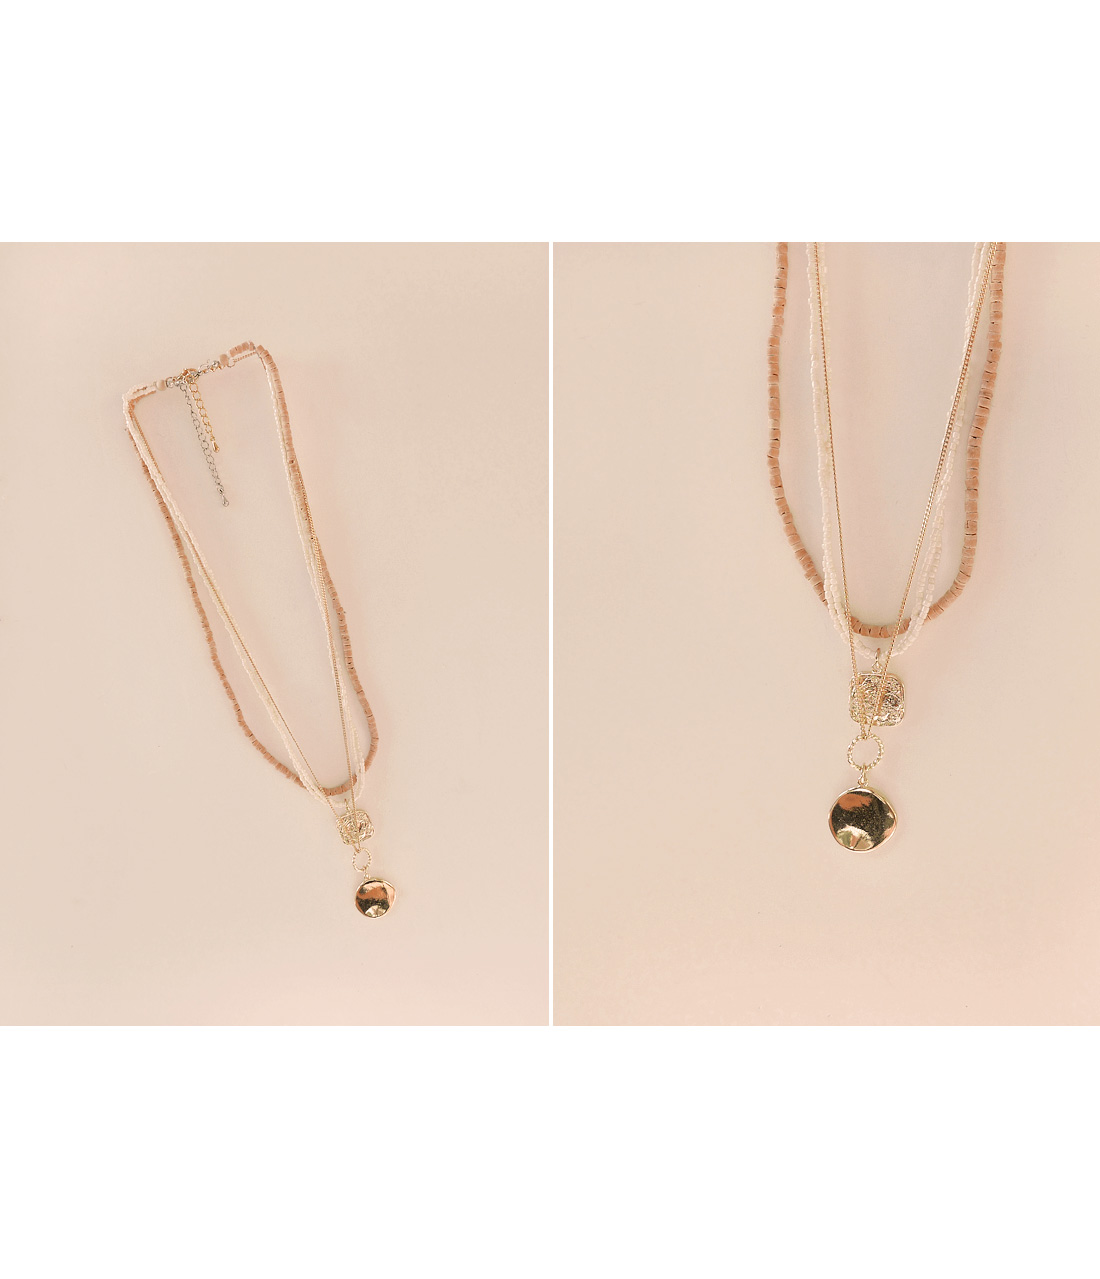 DALI WOOD PEARL NECKLACE